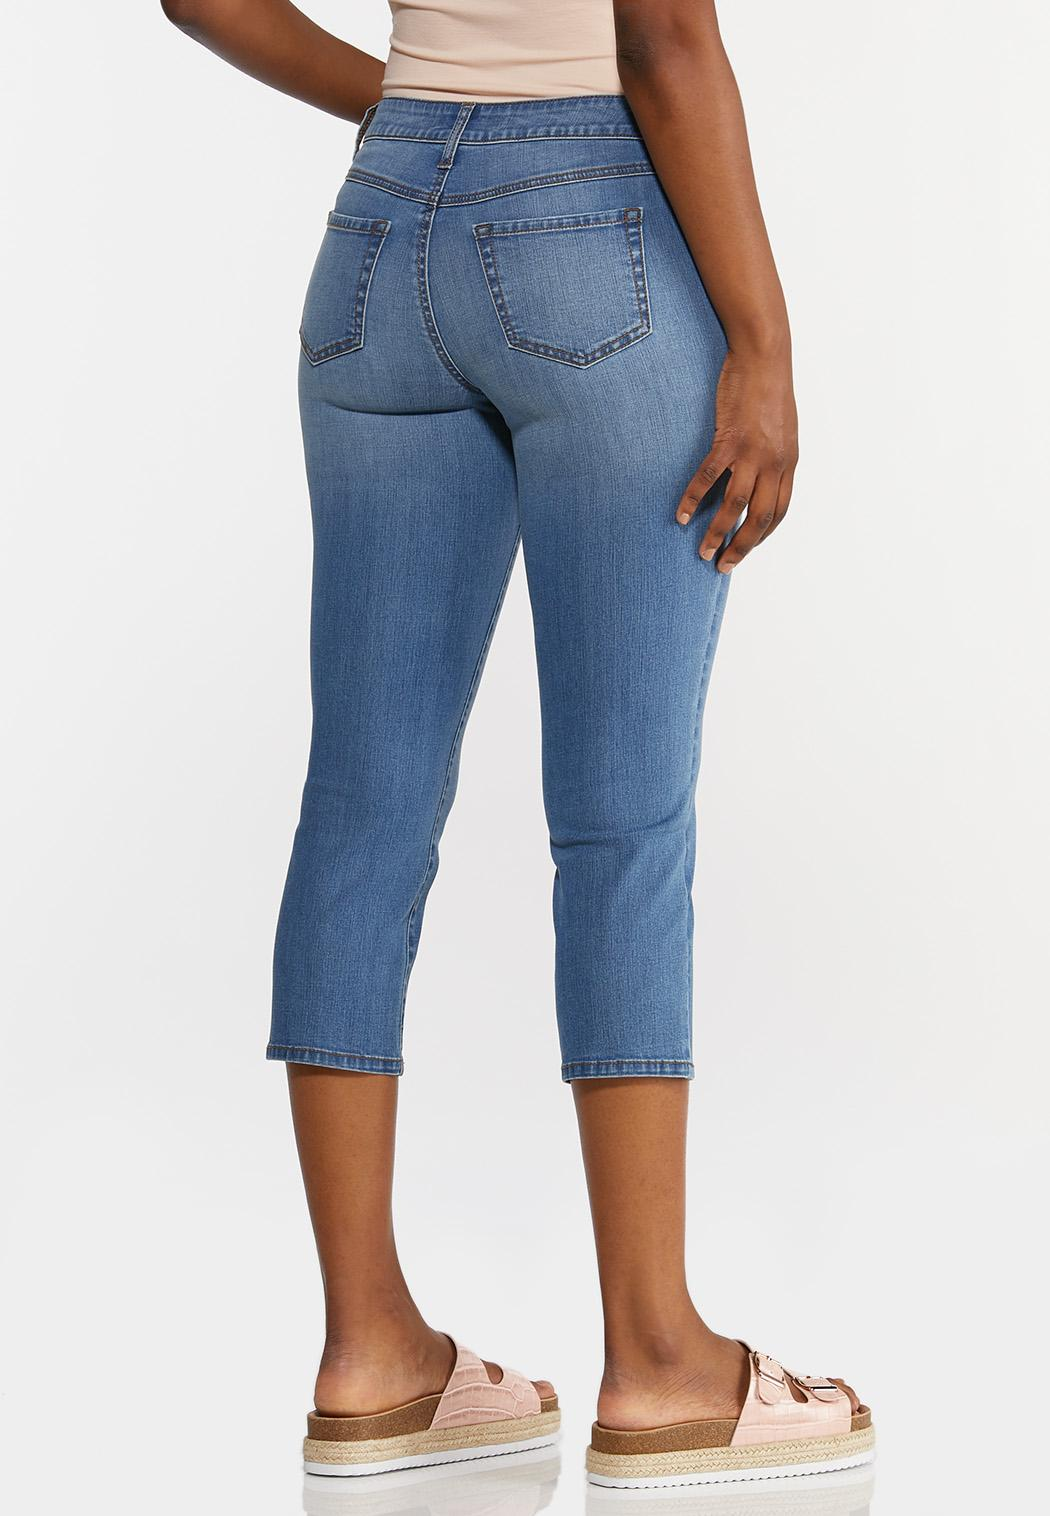 Cropped Jeans (Item #44243053)